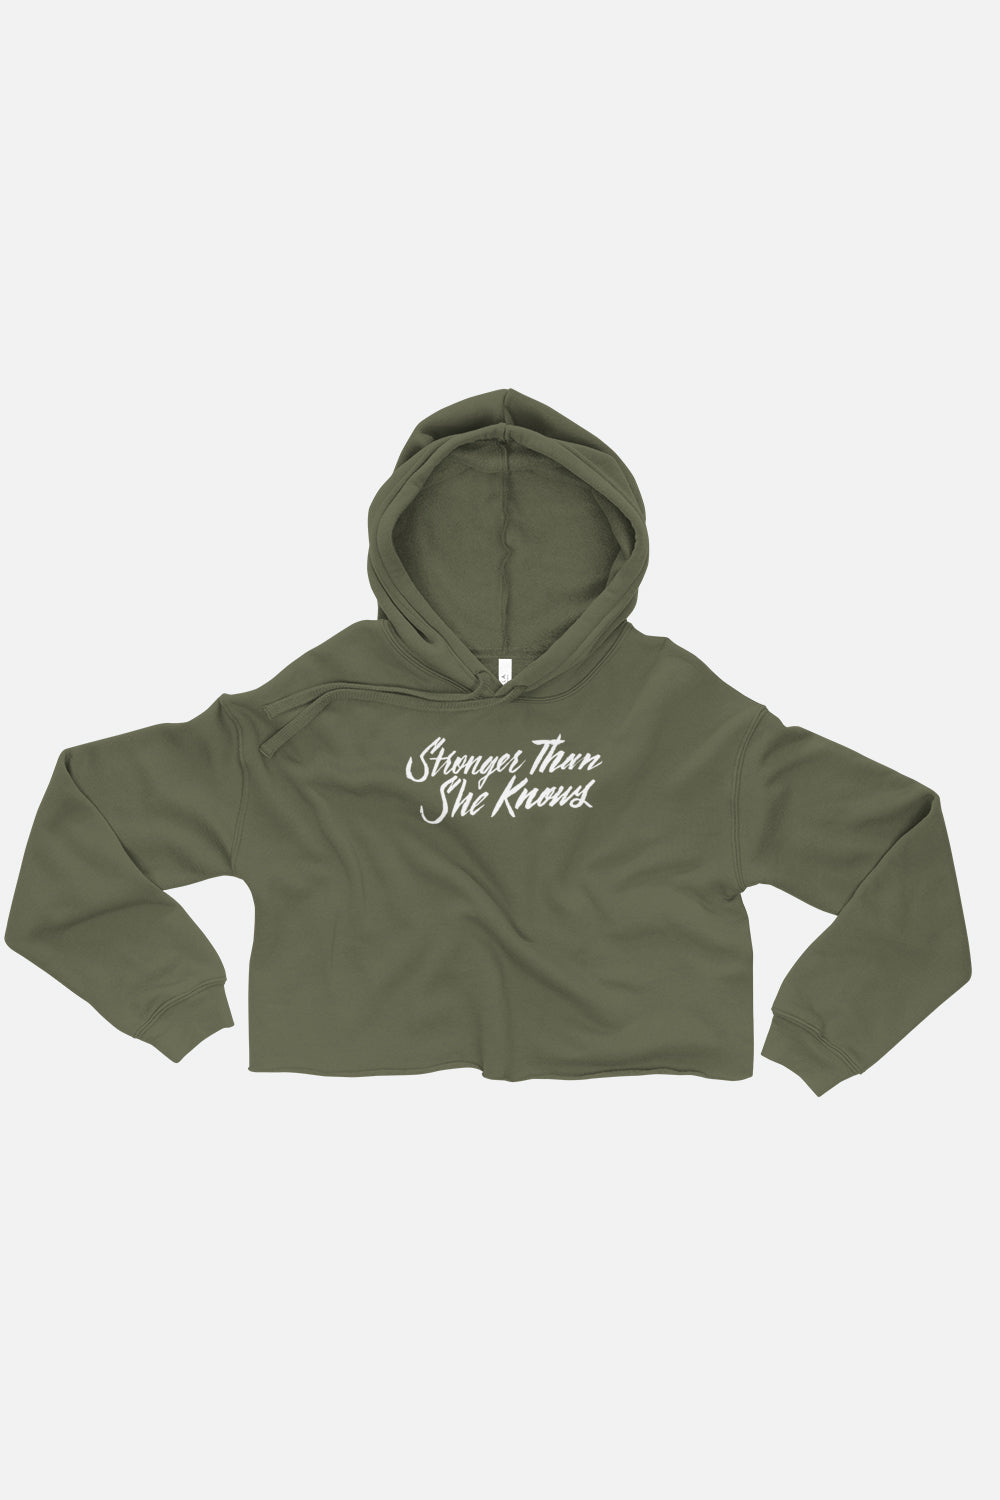 Stronger Than She Knows Crop Hoodie